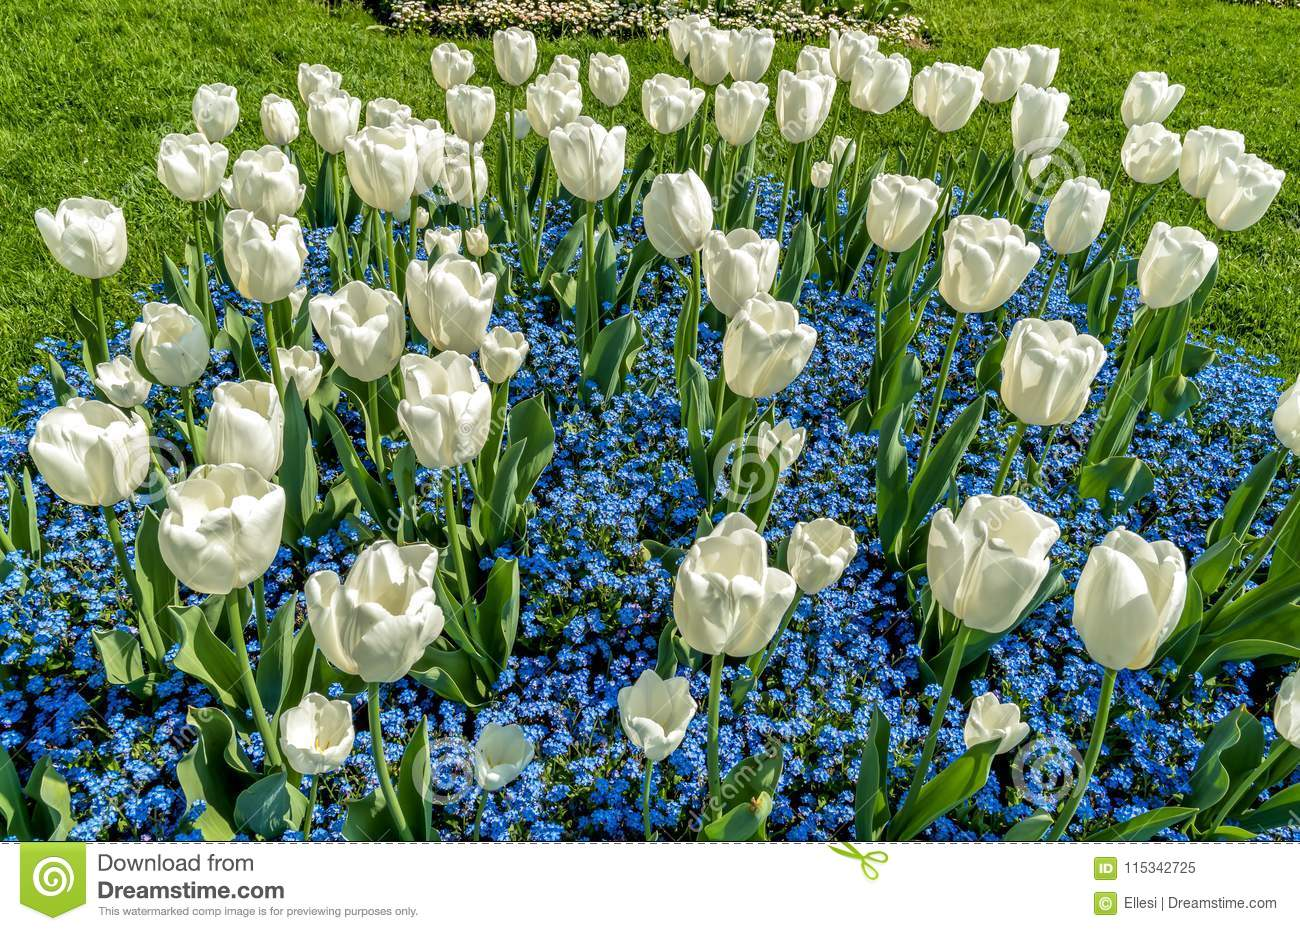 White Tulips With Alpine Forget Me Not Blue Flowers In Spring Time